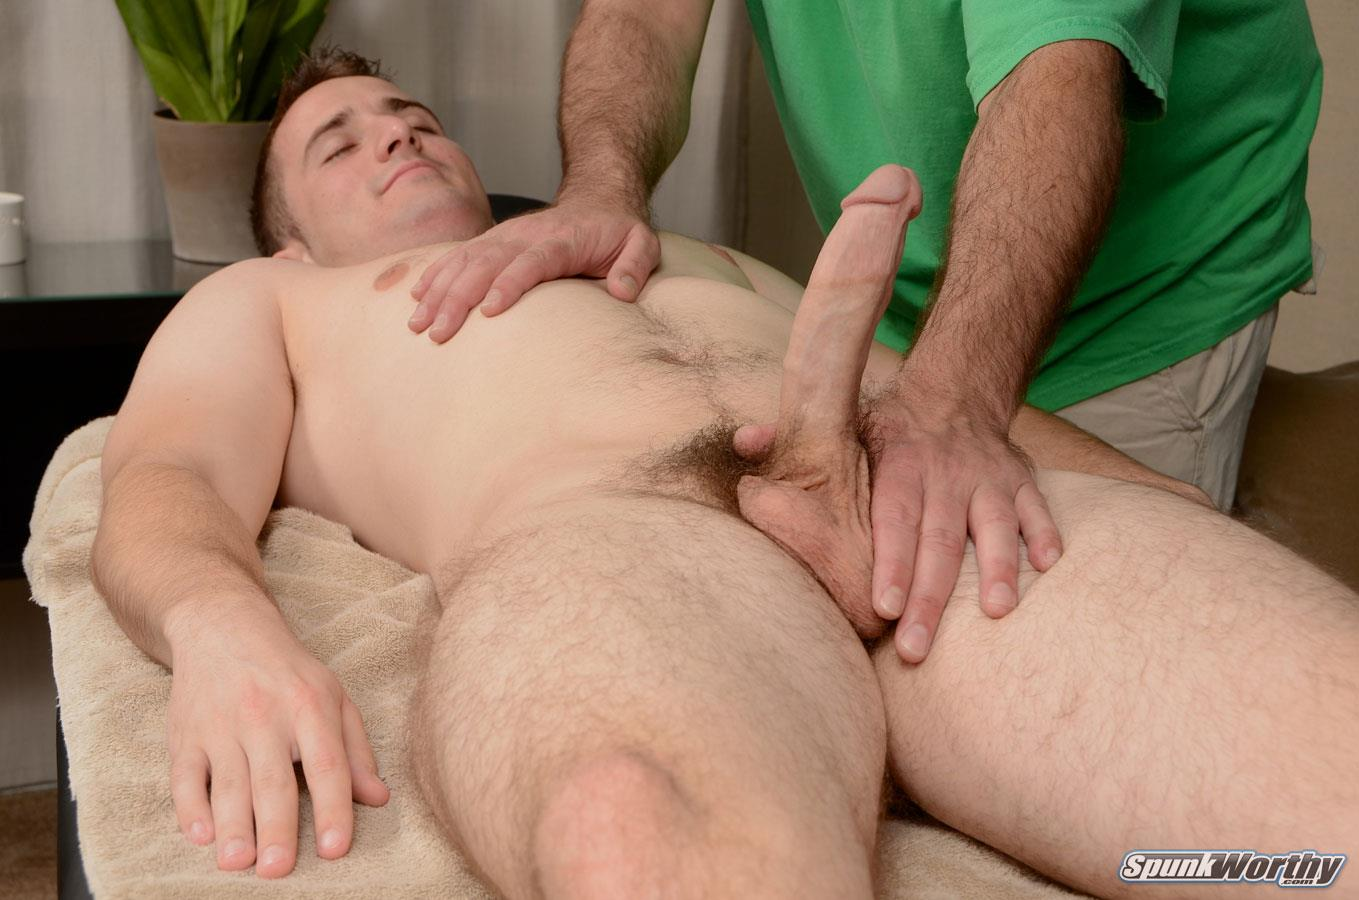 SpunkWorthy-Jordan-Staight-College-Baseball-Player-Getting-Blowjob-from-a-Guy-Amateur-Gay-Porn-11 Straight College Baseball Player Gets A Massage And Happy Ending From A Guy